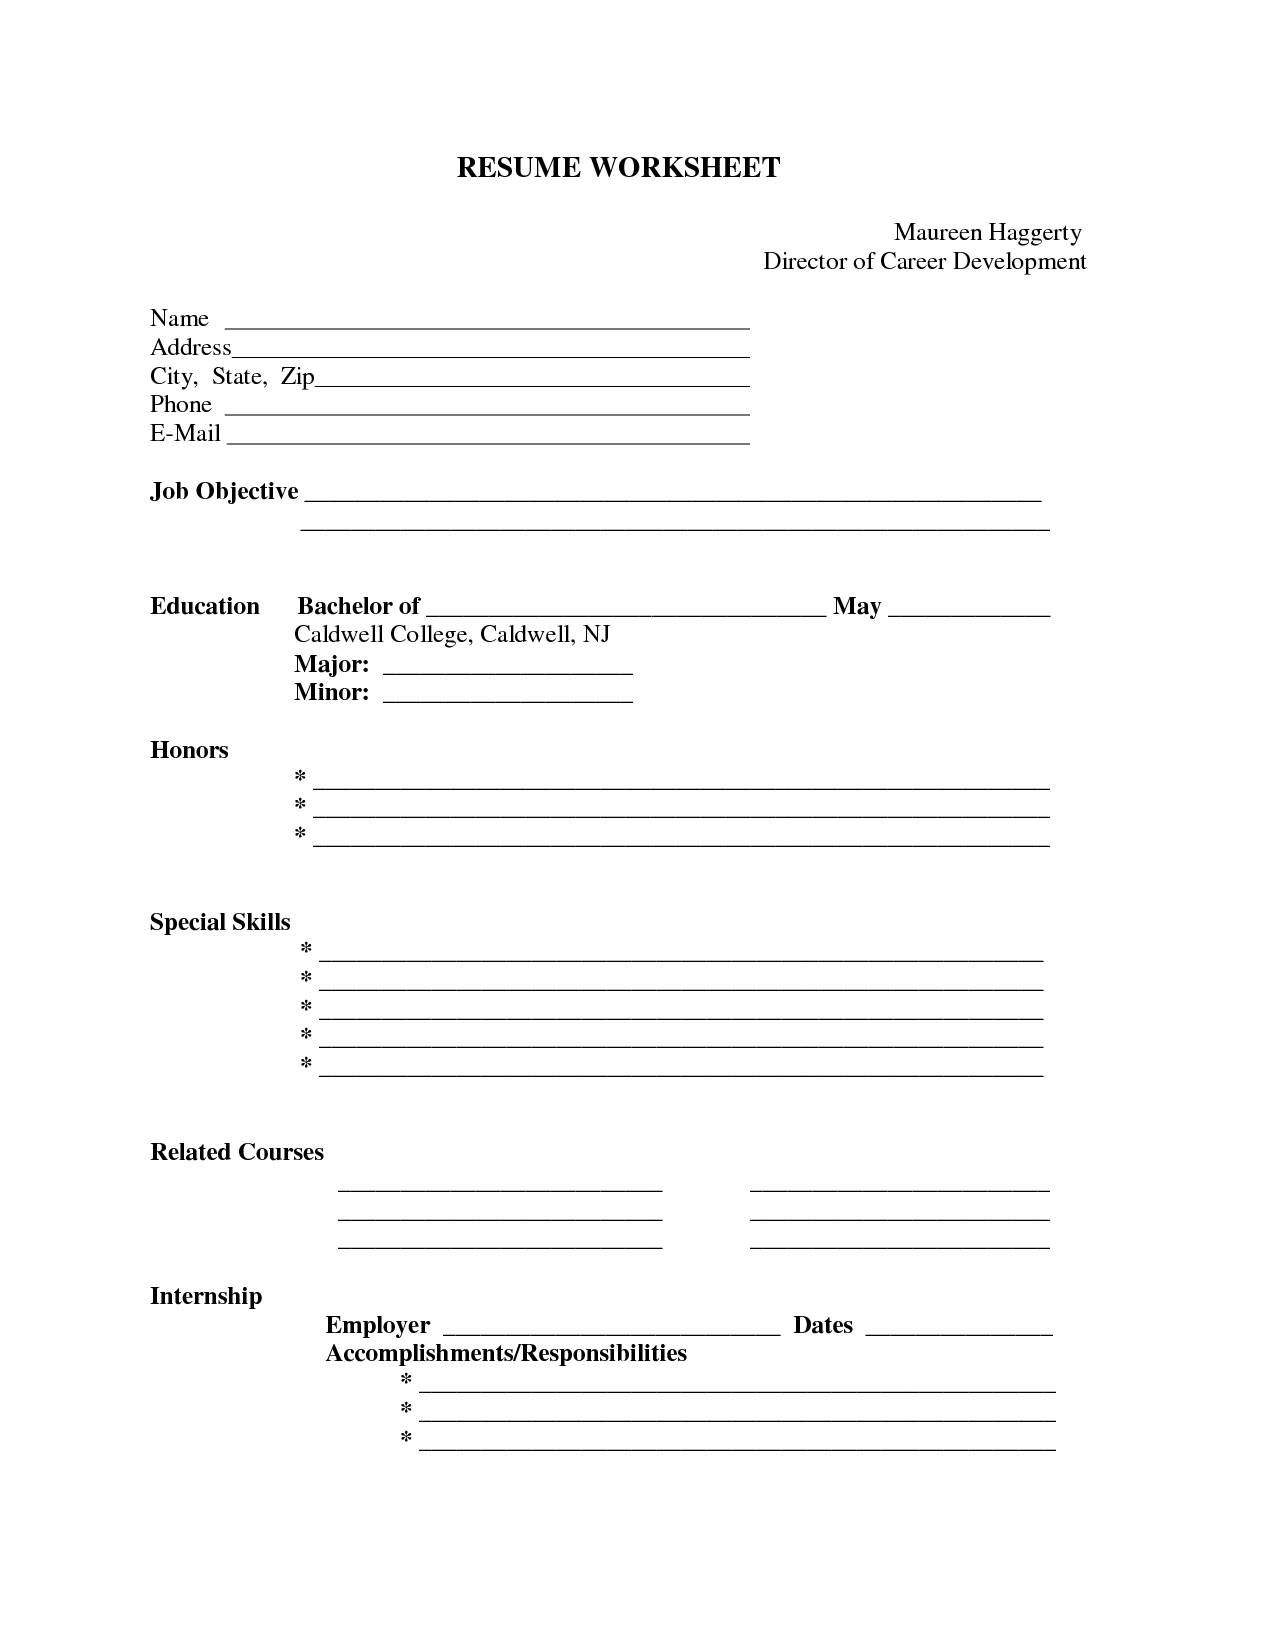 Worksheets Resume Outline Worksheet resume printable template daway dabrowa co template